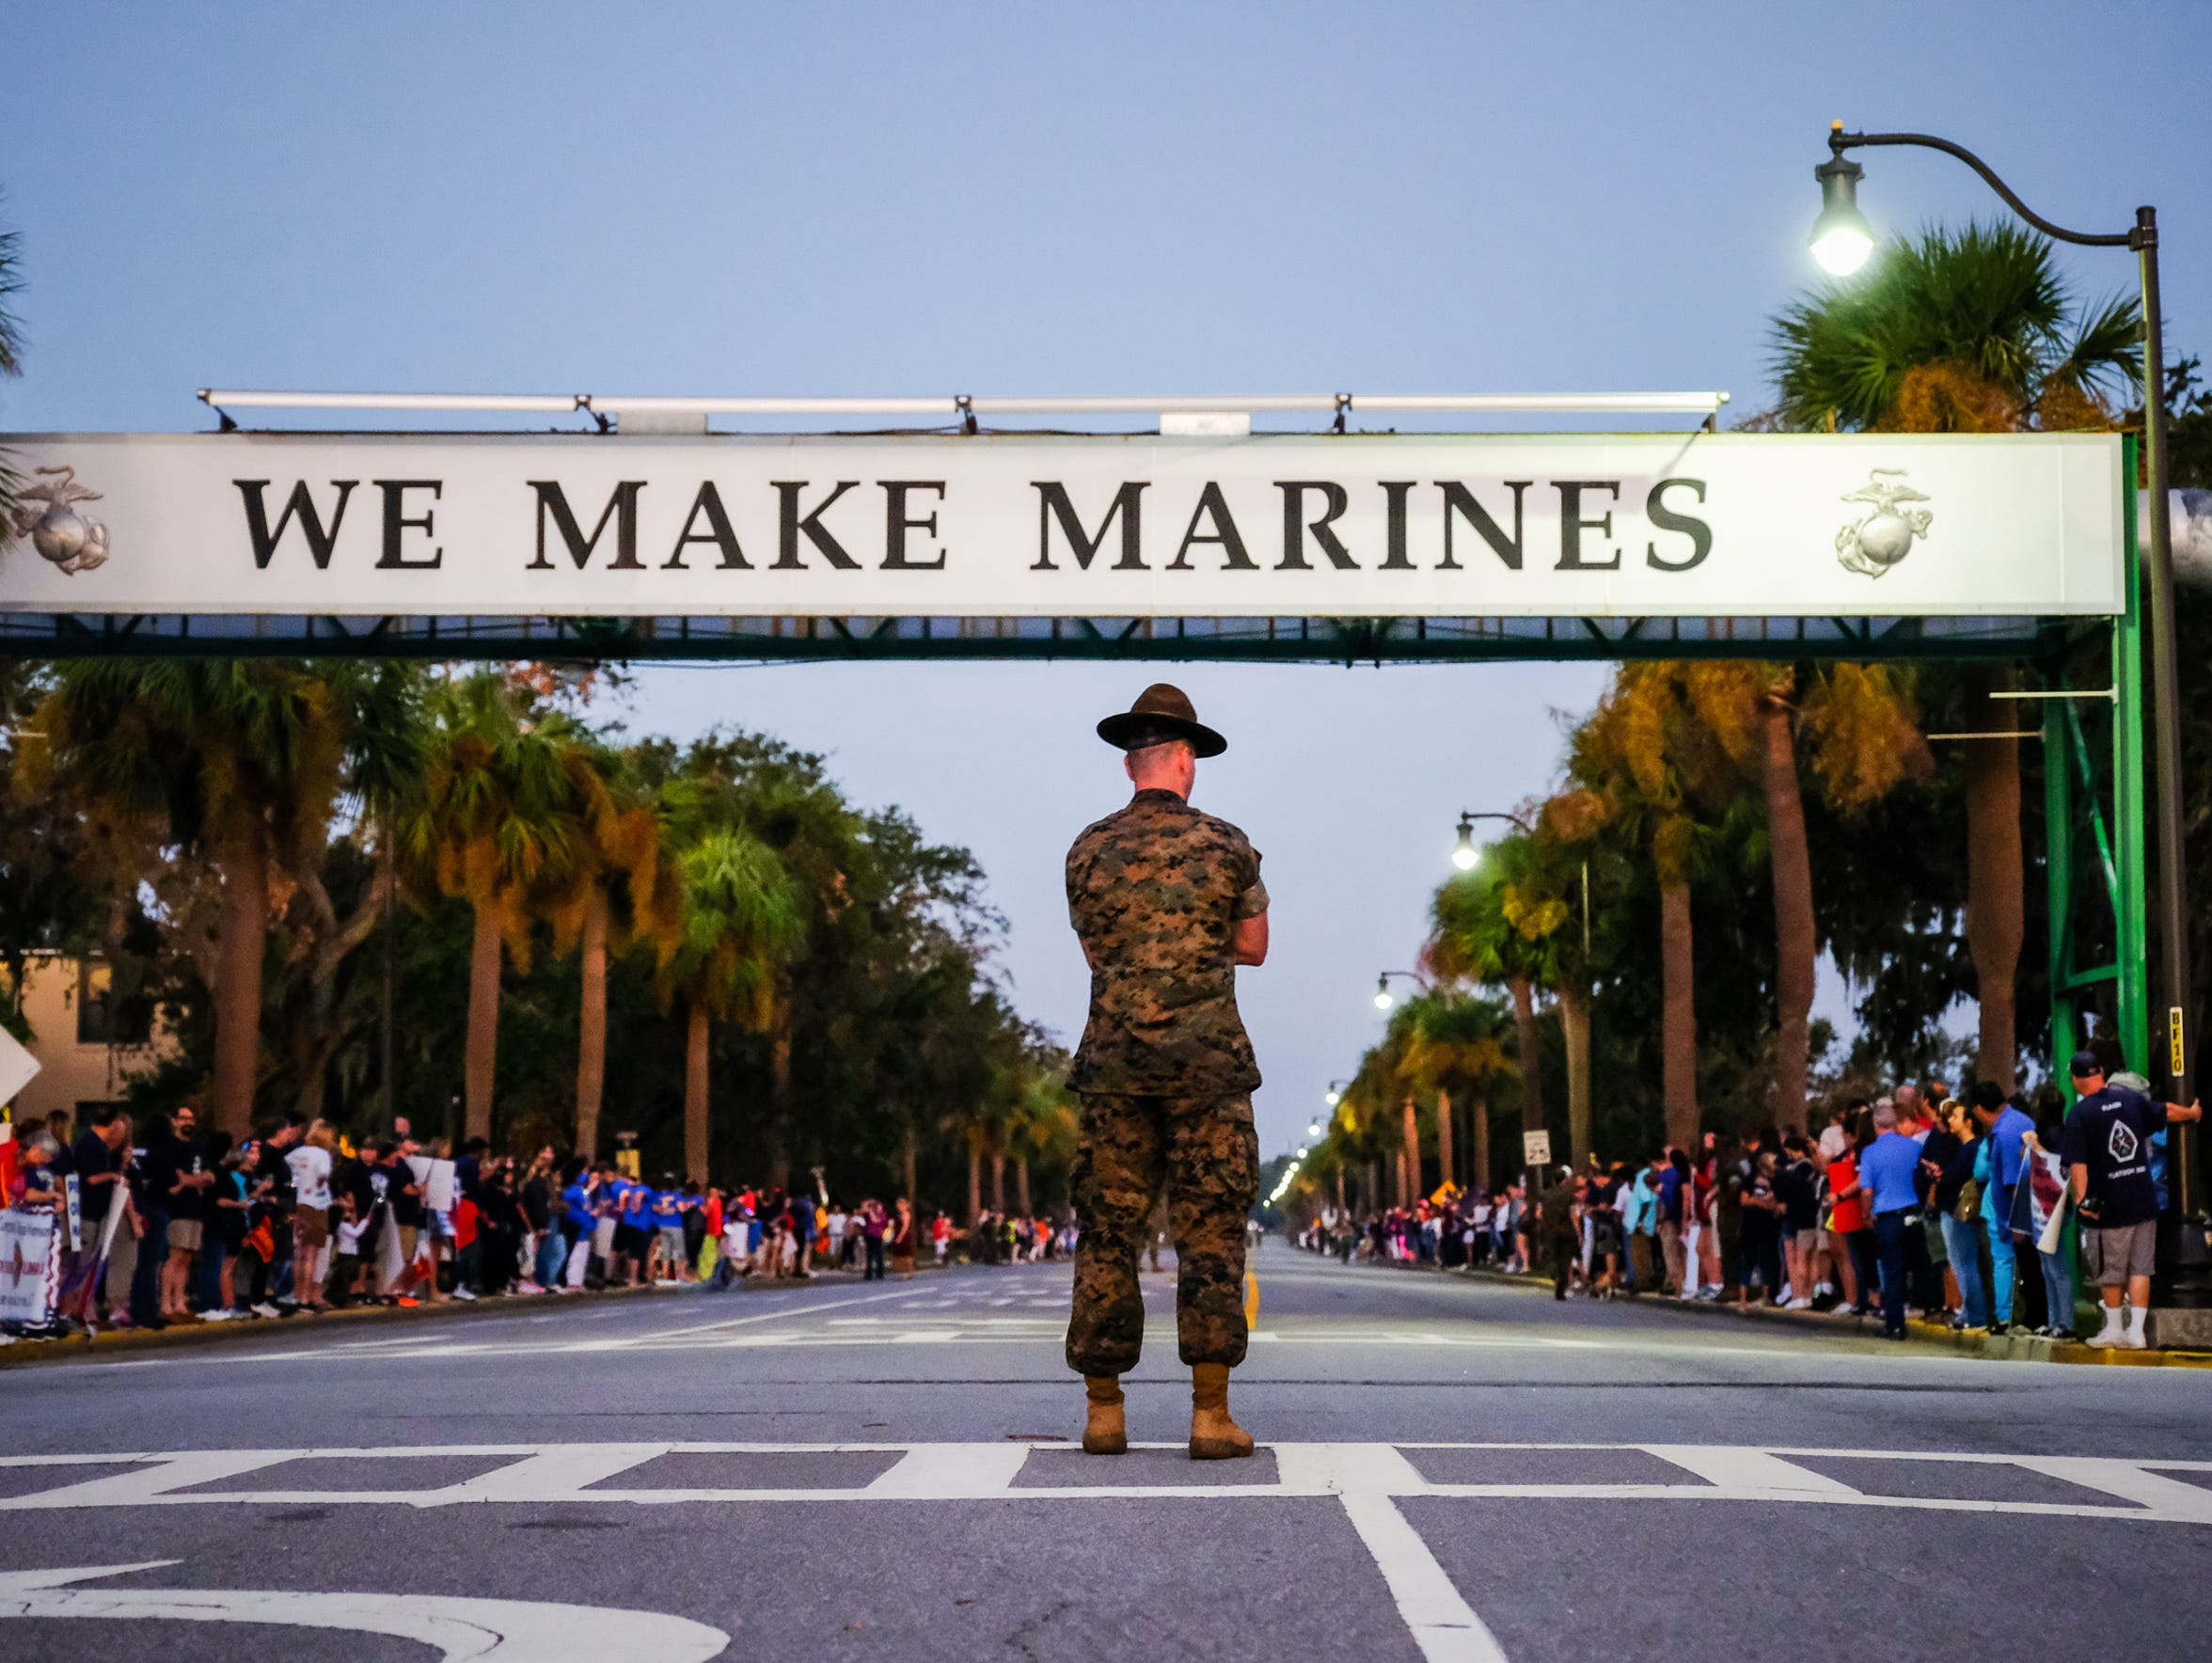 A drill instructor stands in the middle of the road